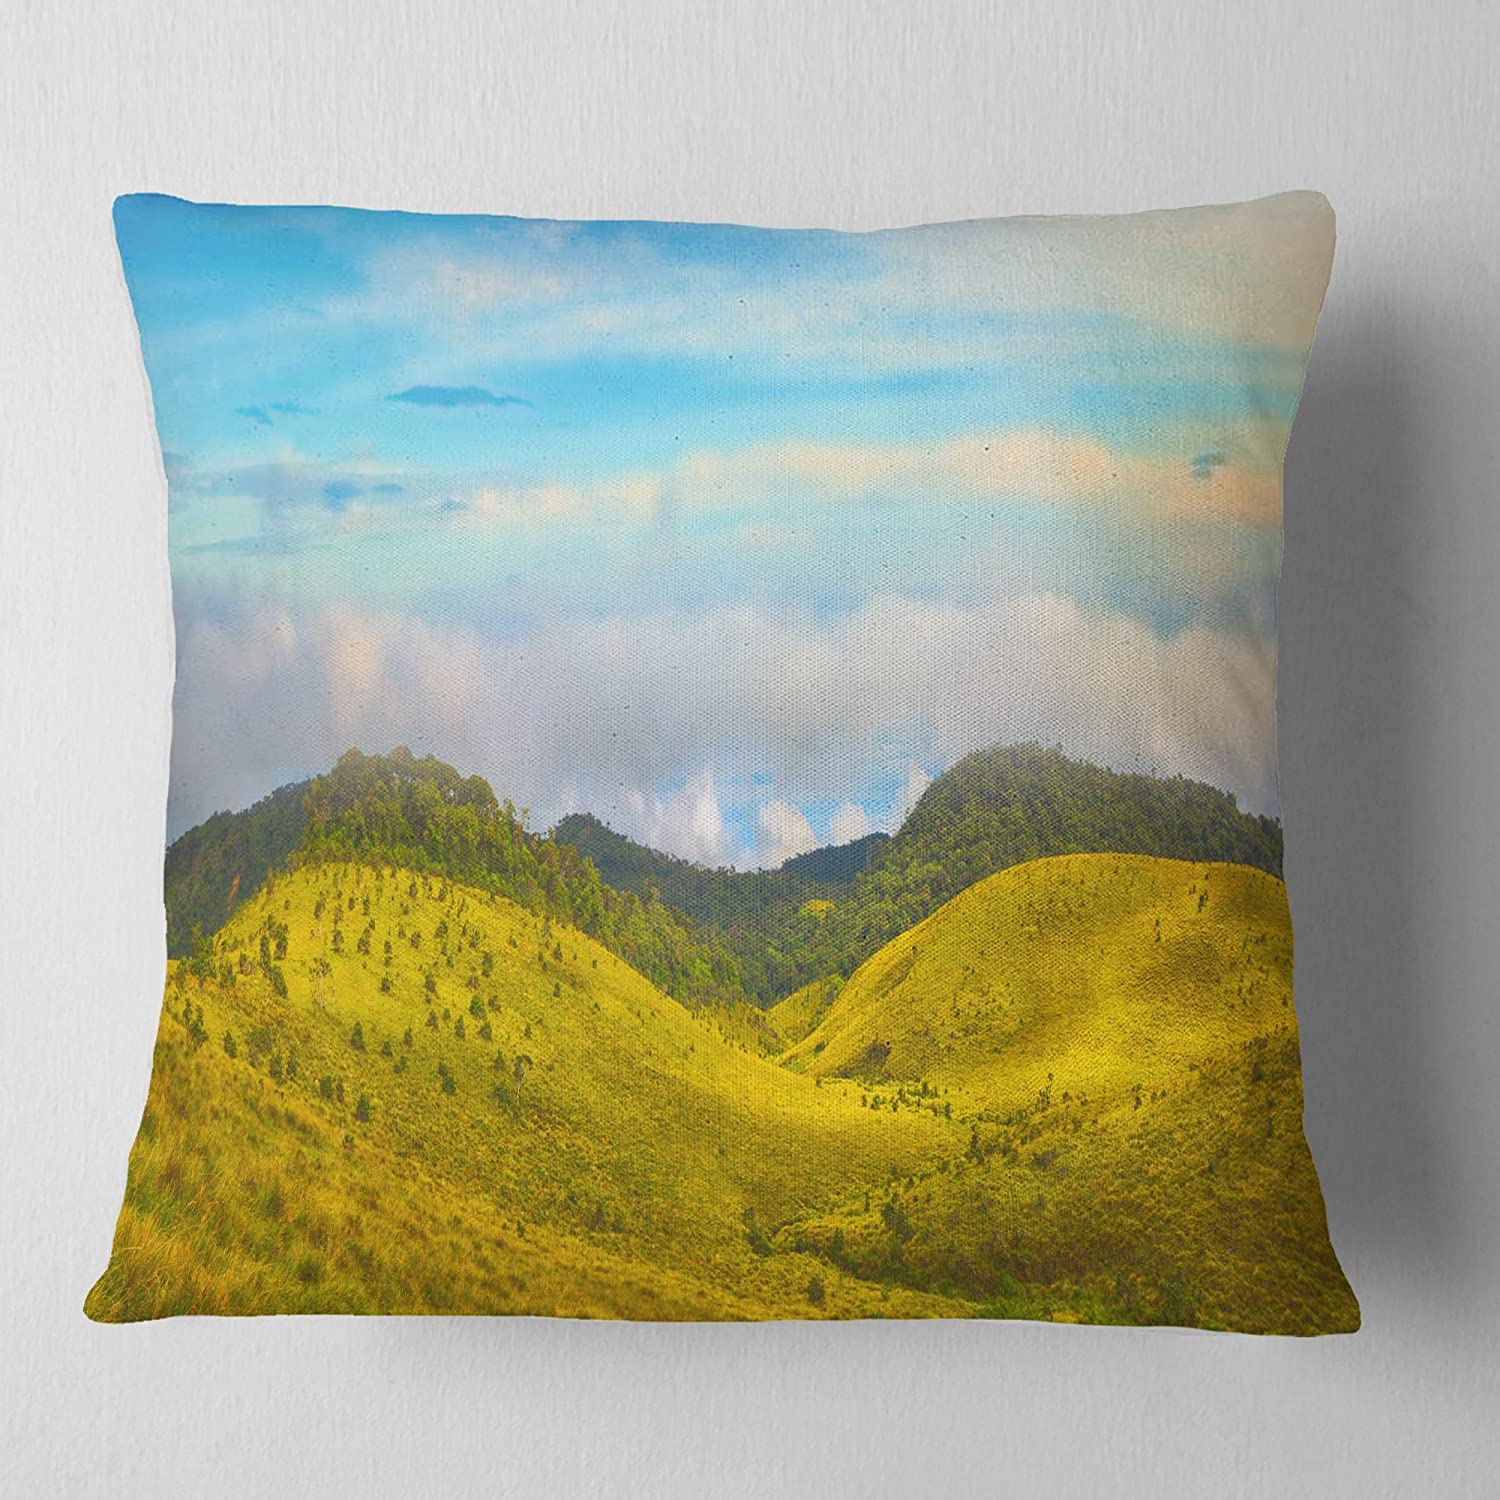 Designart CU11313-26-26 The Horton Plains Green Panorama' Landscape Printed Cushion Cover for Living Room, Sofa Throw Pillow 26 in. x 26 in. in